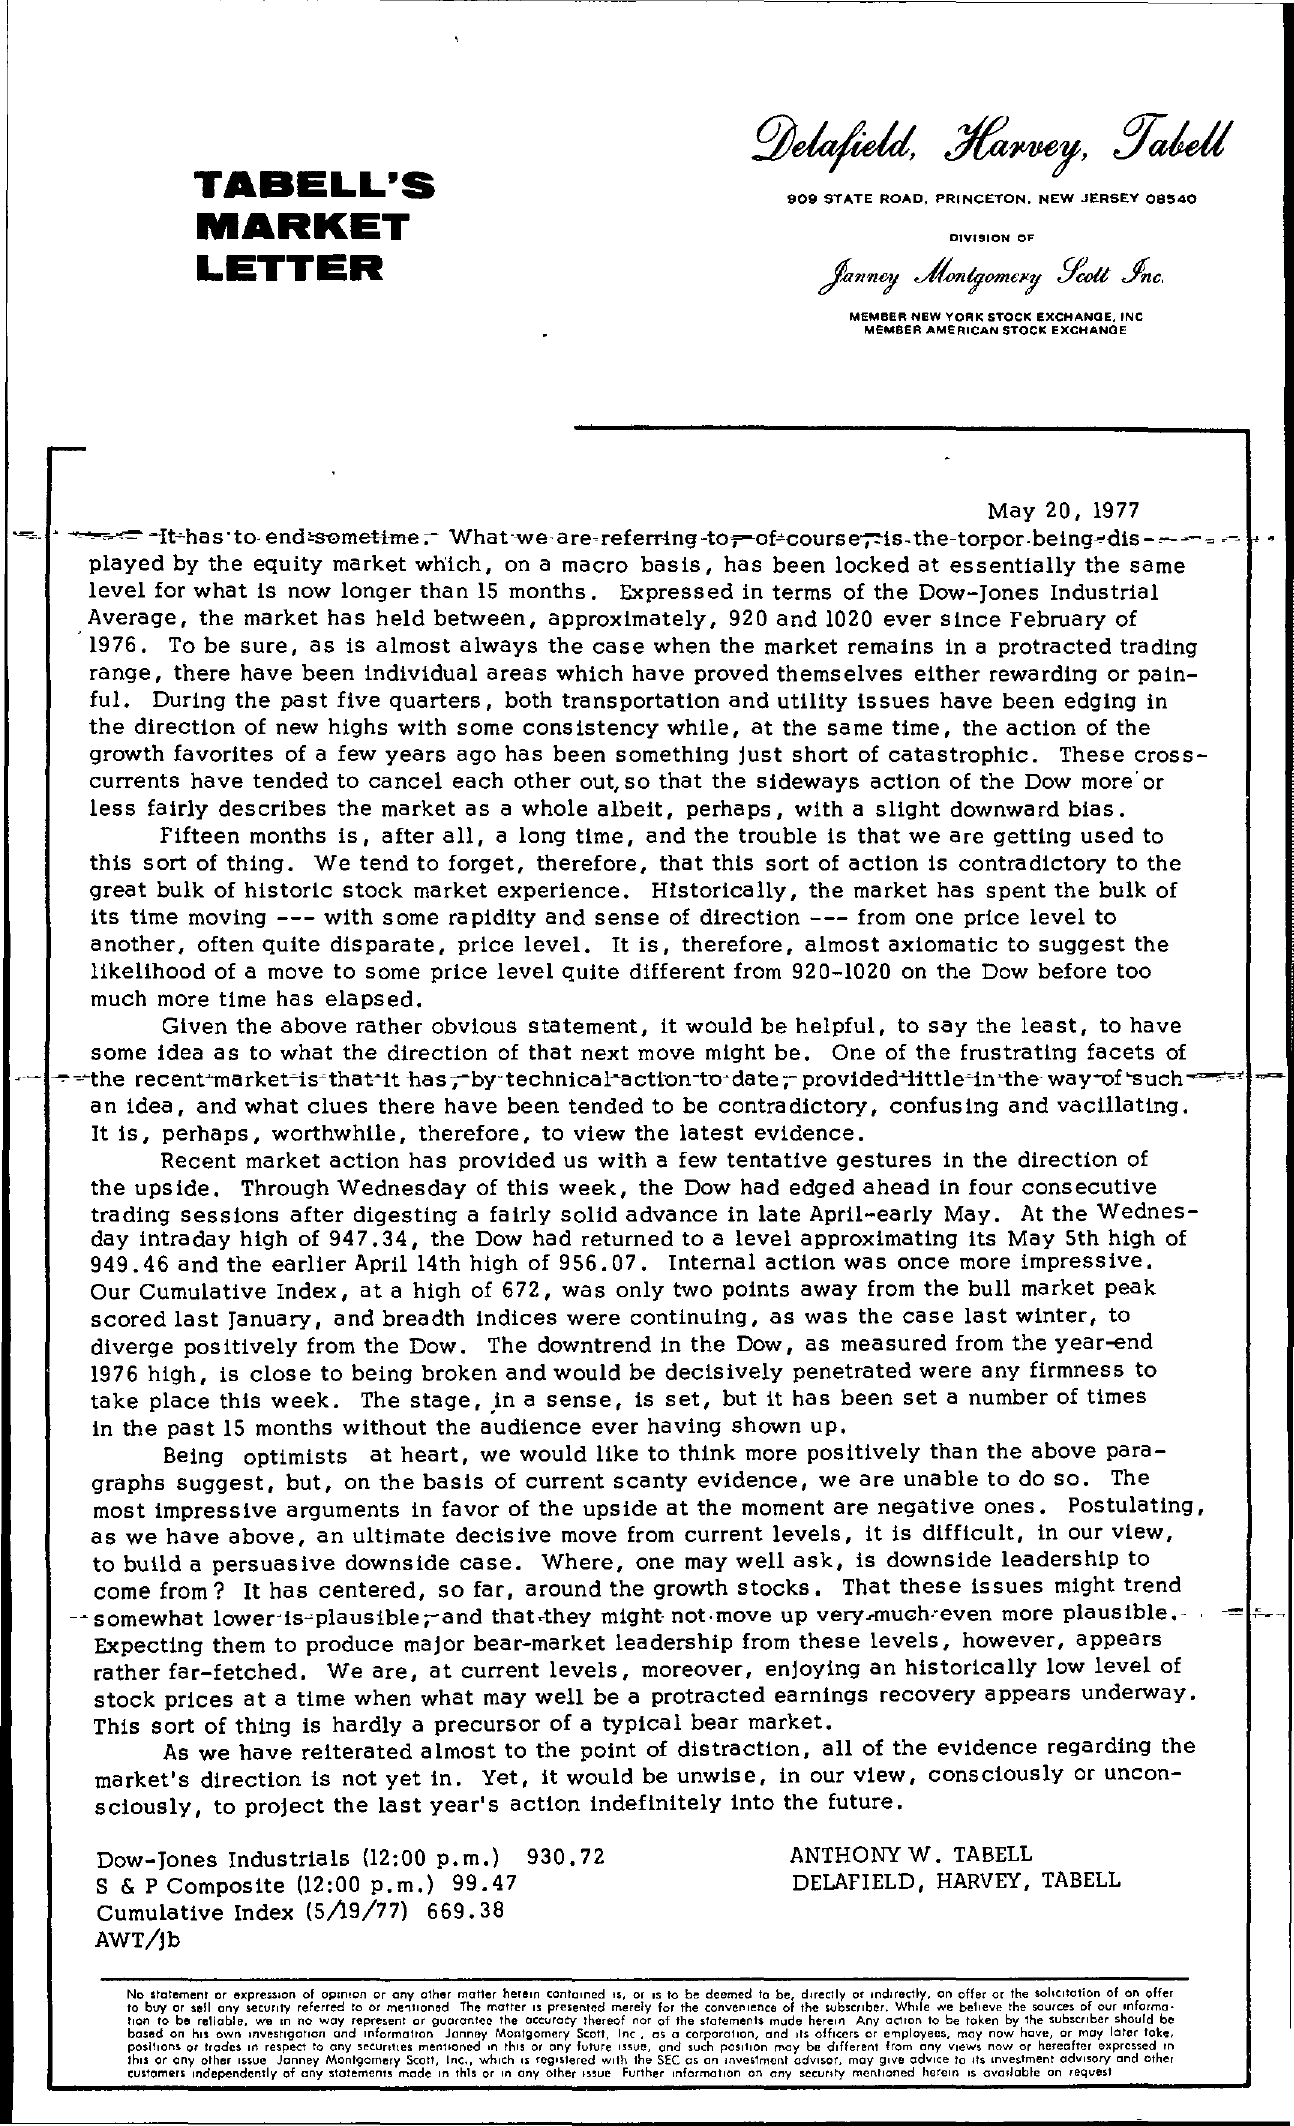 Tabell's Market Letter - May 20, 1977